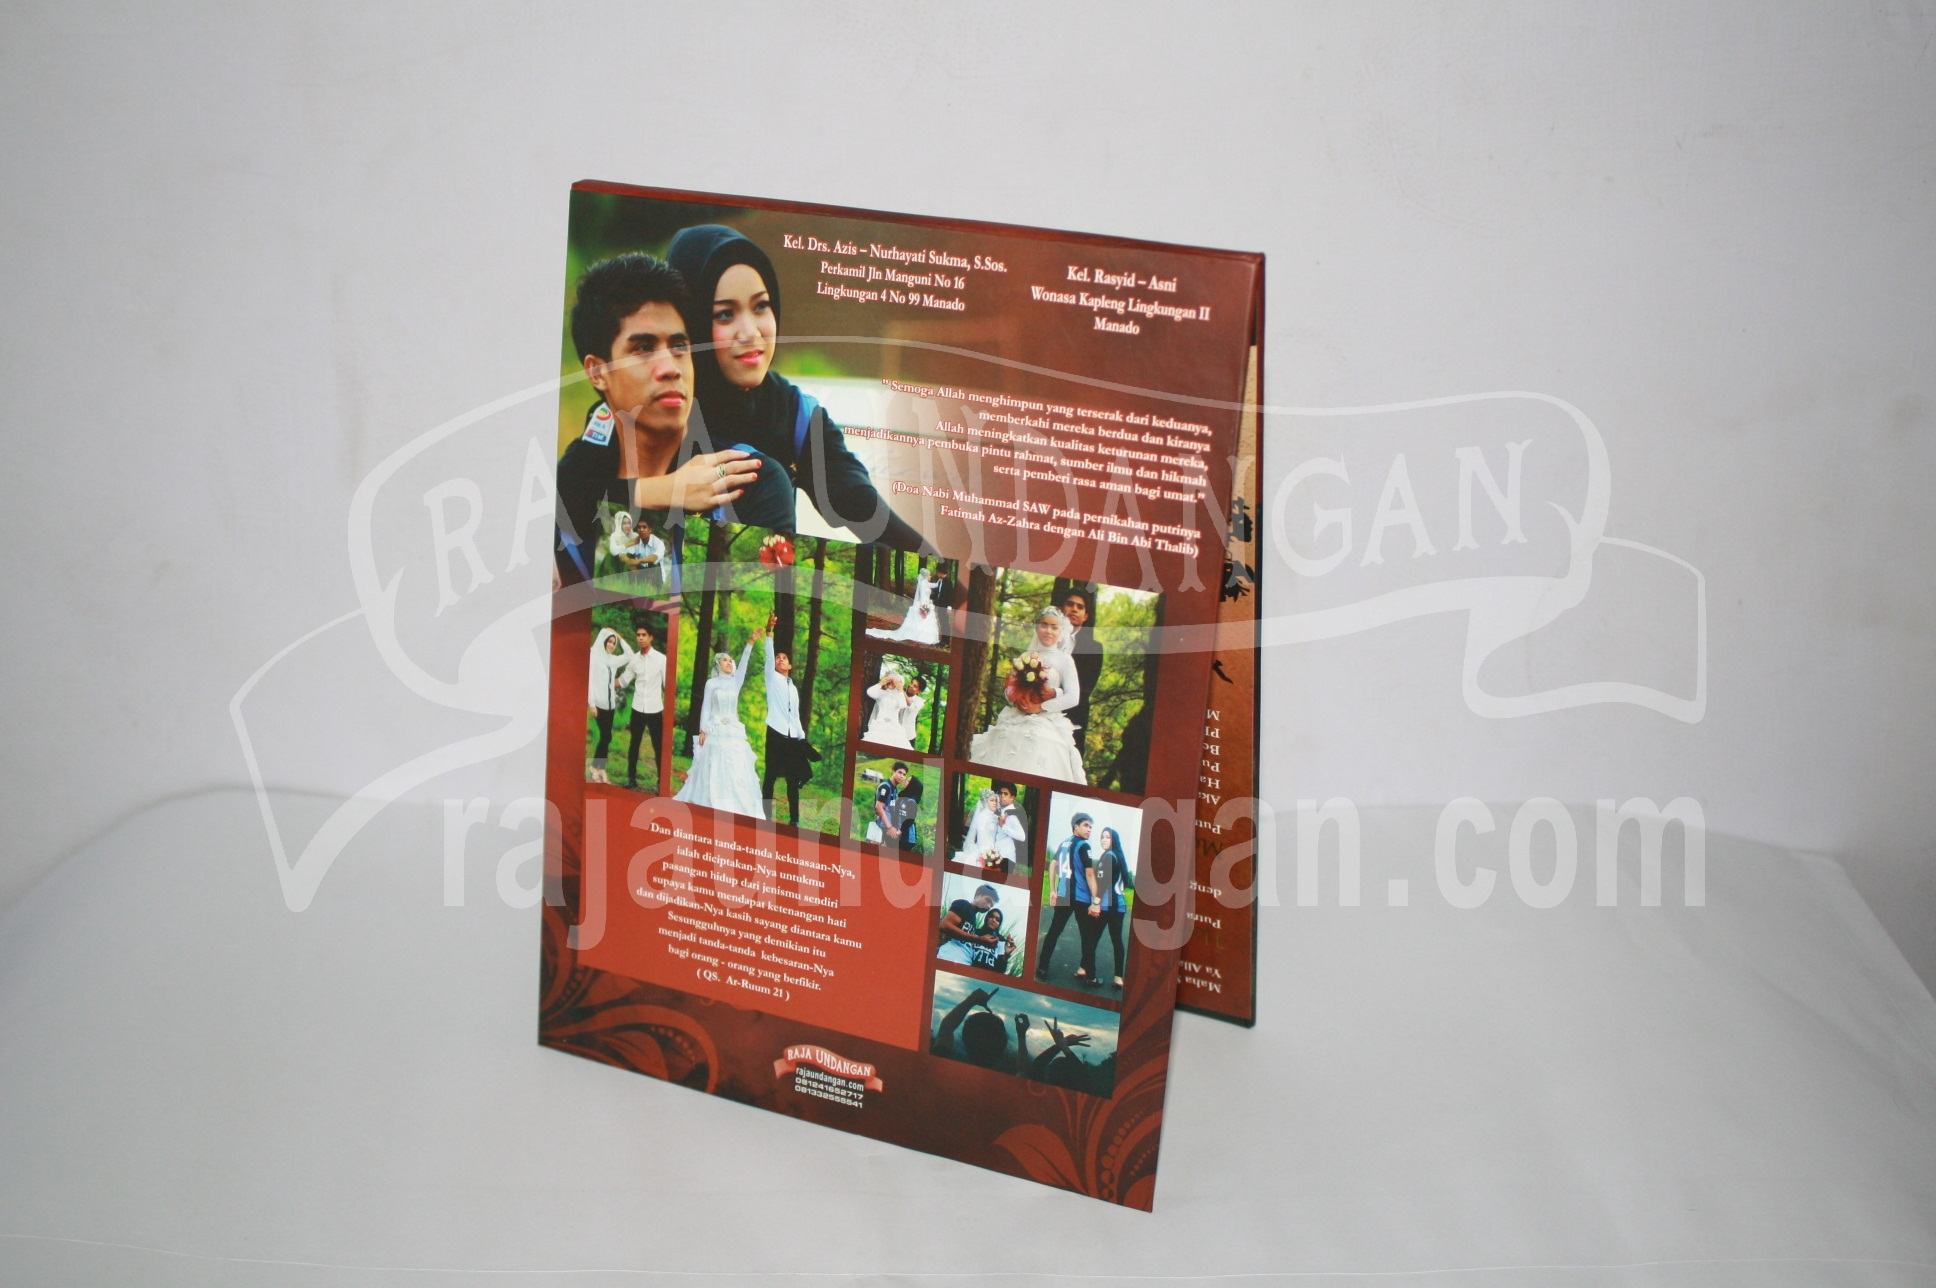 Undangan Pernikahan Hardcover Pop Up Heri dan Mona EDC 43 11 - Pesan Wedding Invitations Online di Dupak